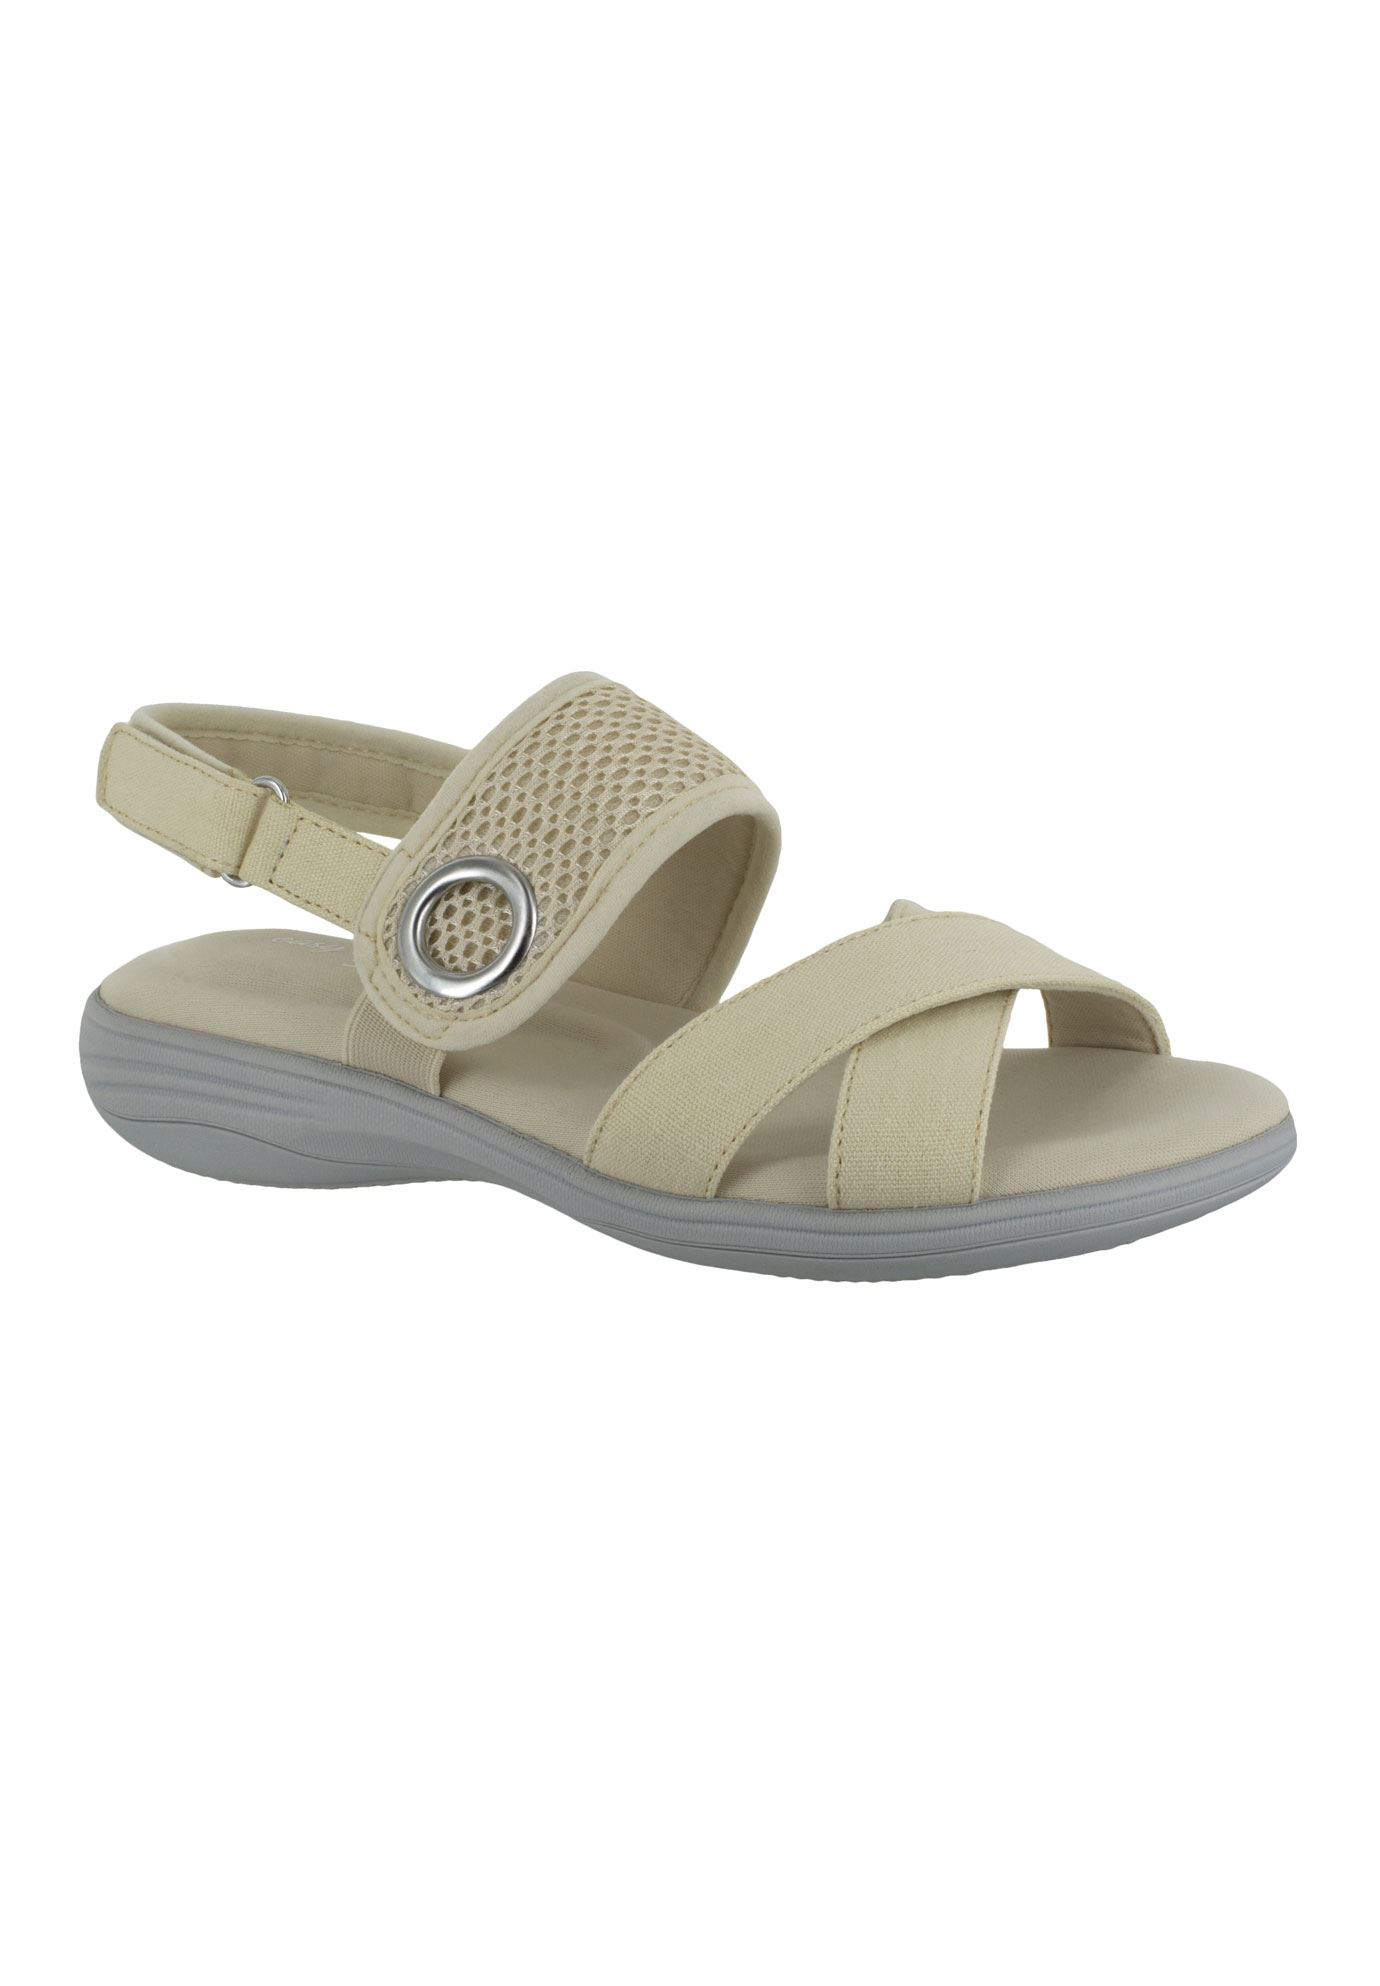 Shae Sandals by Easy Street®,